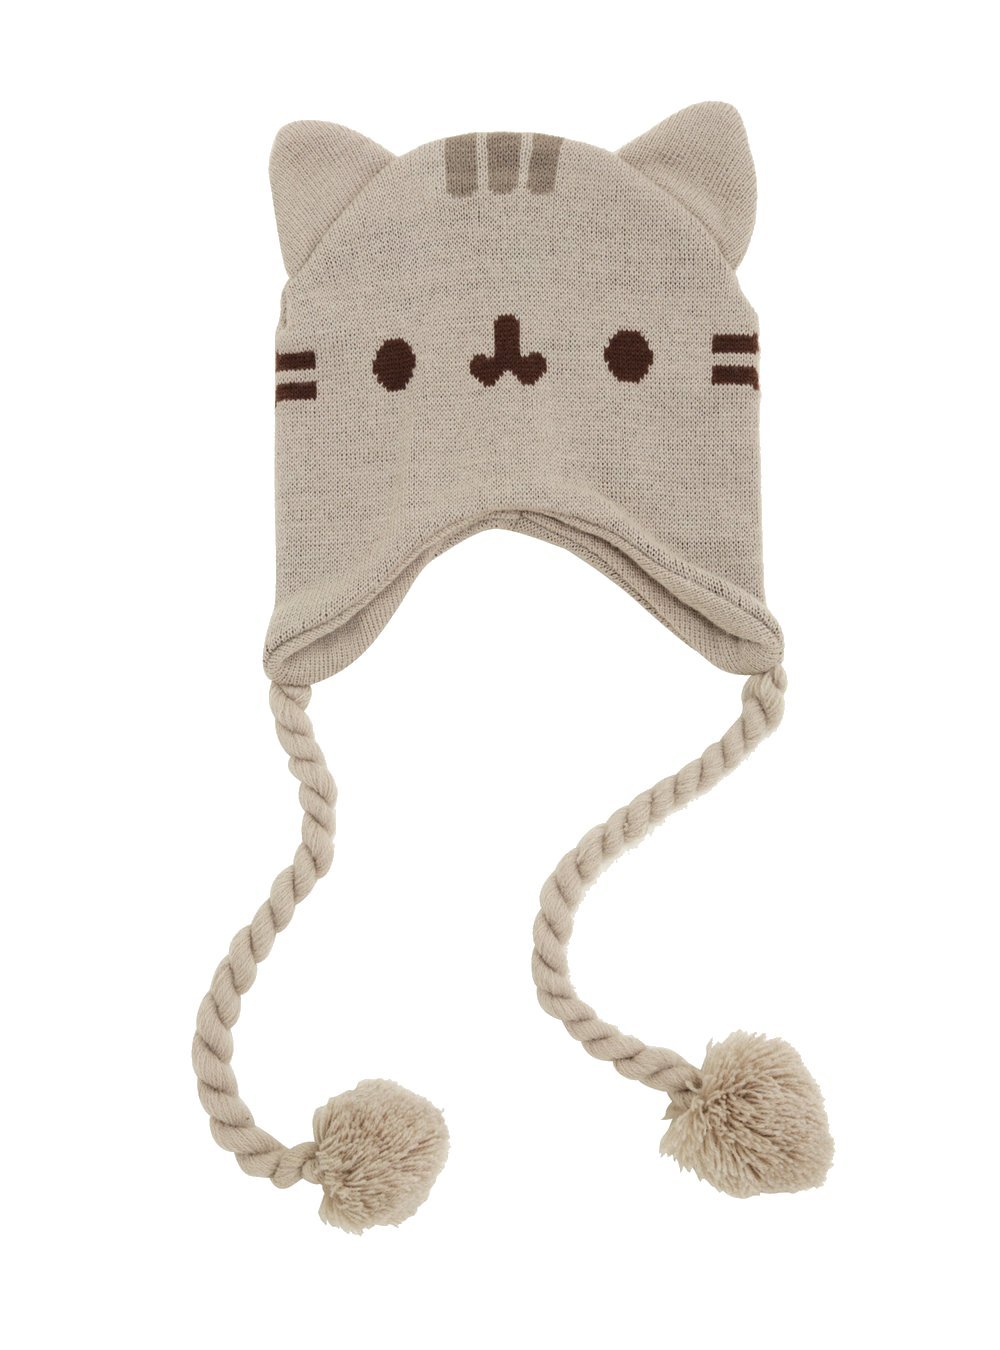 a3f90e75991 Get Quotations · Pusheen Cat Face Ears Beanie - Pusheen the Cat Beanie Hat  - Grey with Tassels